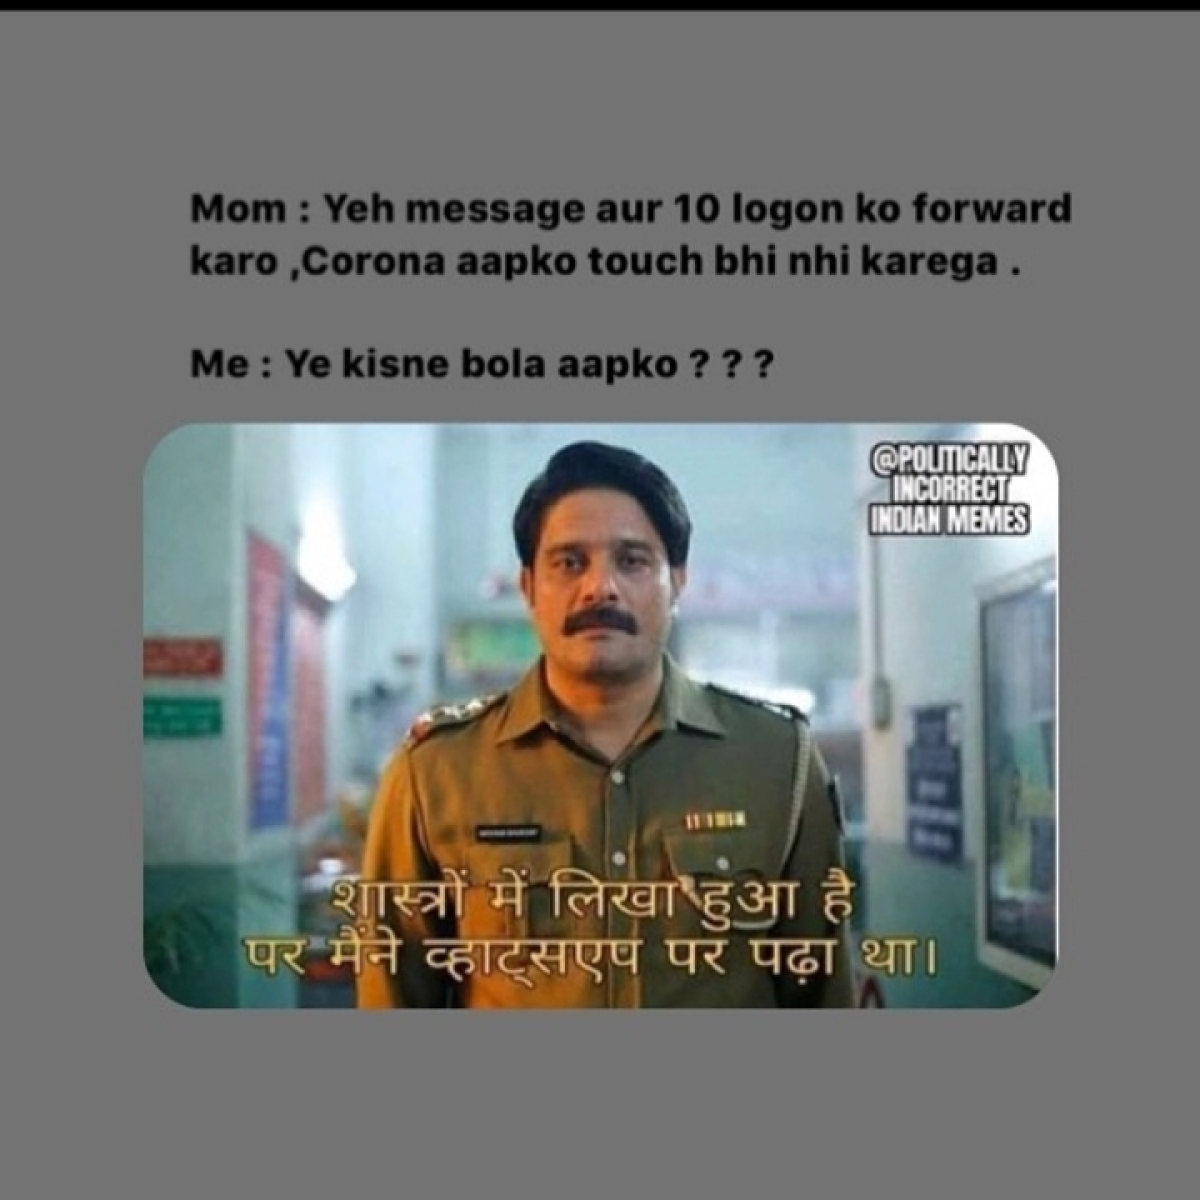 FPJ Fun Corner: Best WhatsApp memes and jokes to lighten your mood amid COVID-19 on May 19, 2020